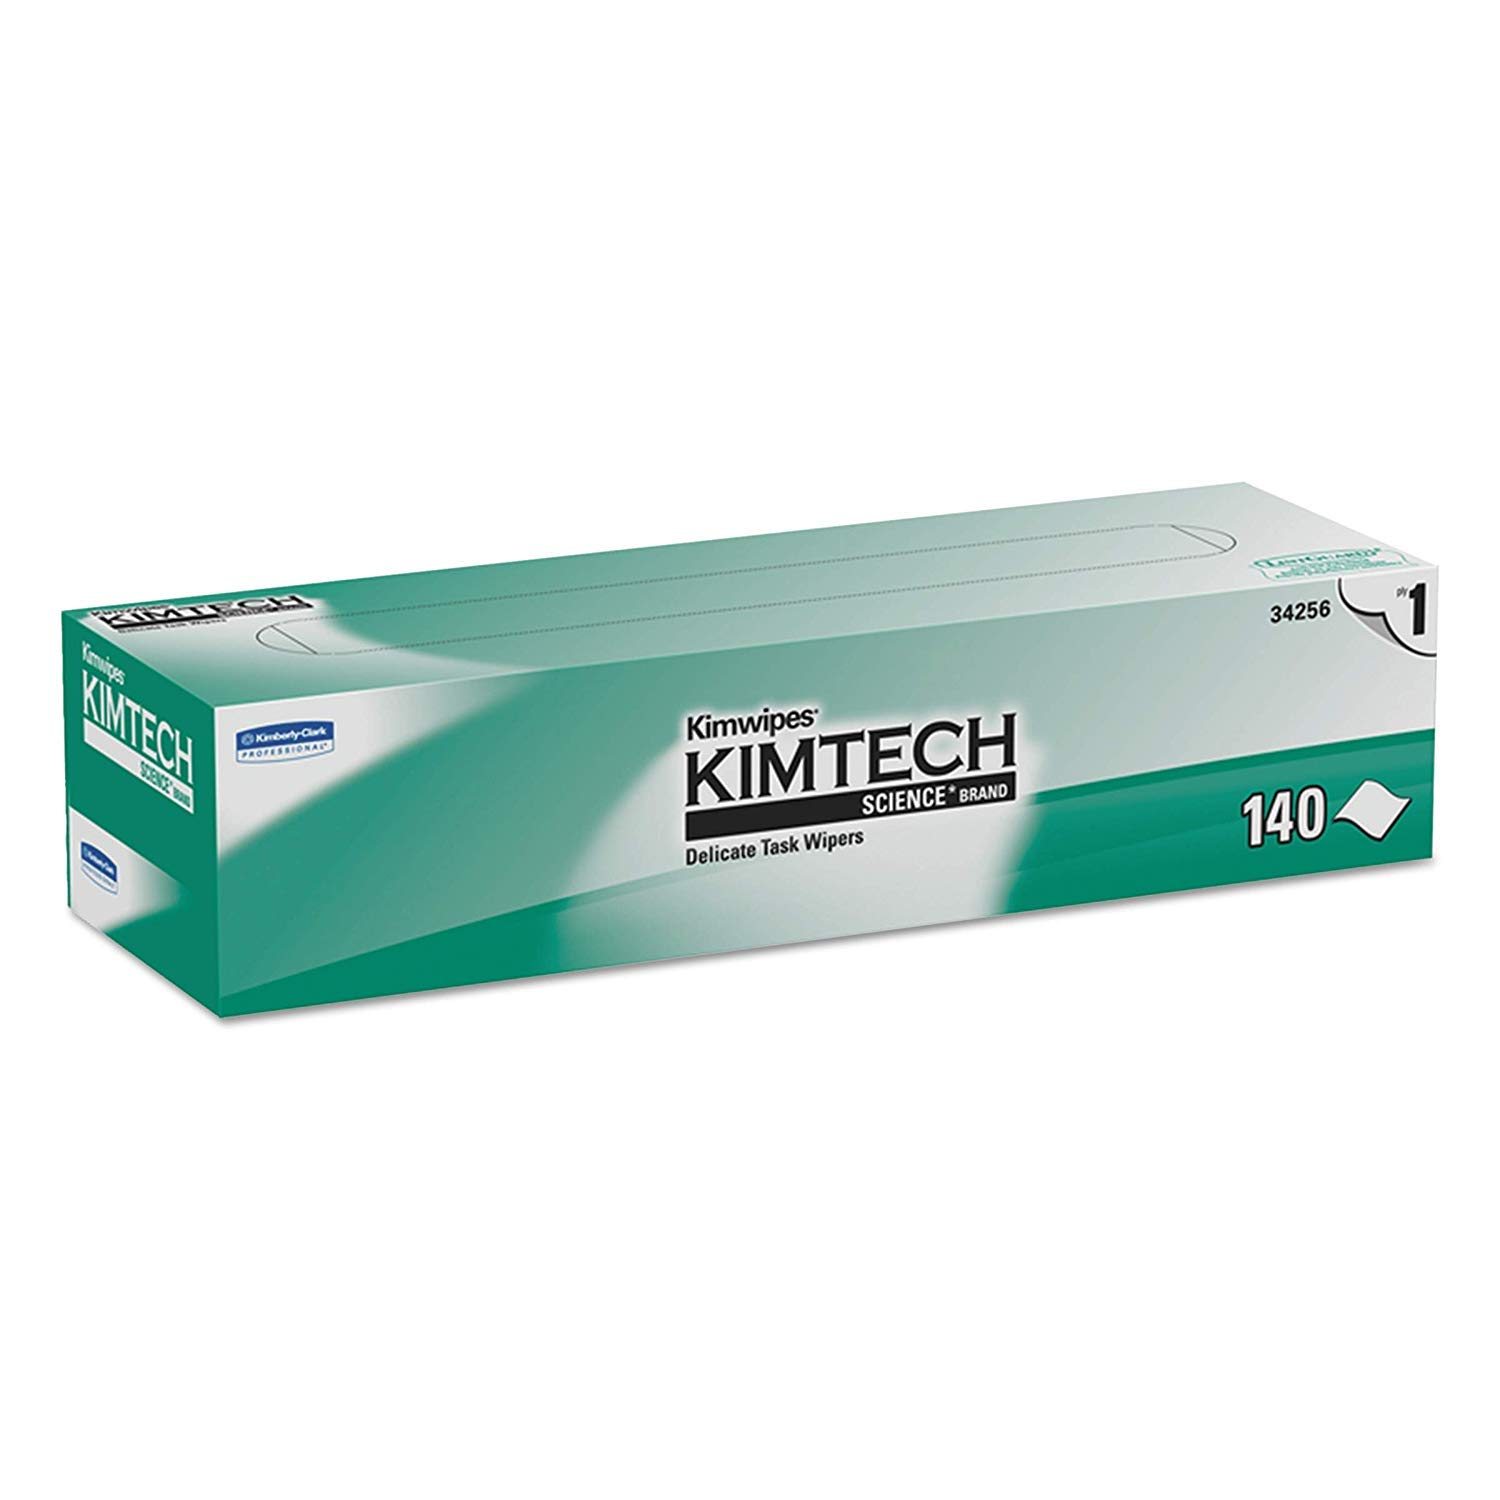 Kimtech 34256CT Kimwipes Delicate Task Wipers, 1-Ply, 14 7/10 x 16 3/5, 140 per Box (Case of 20 Boxes) (Case of 20 Boxes)